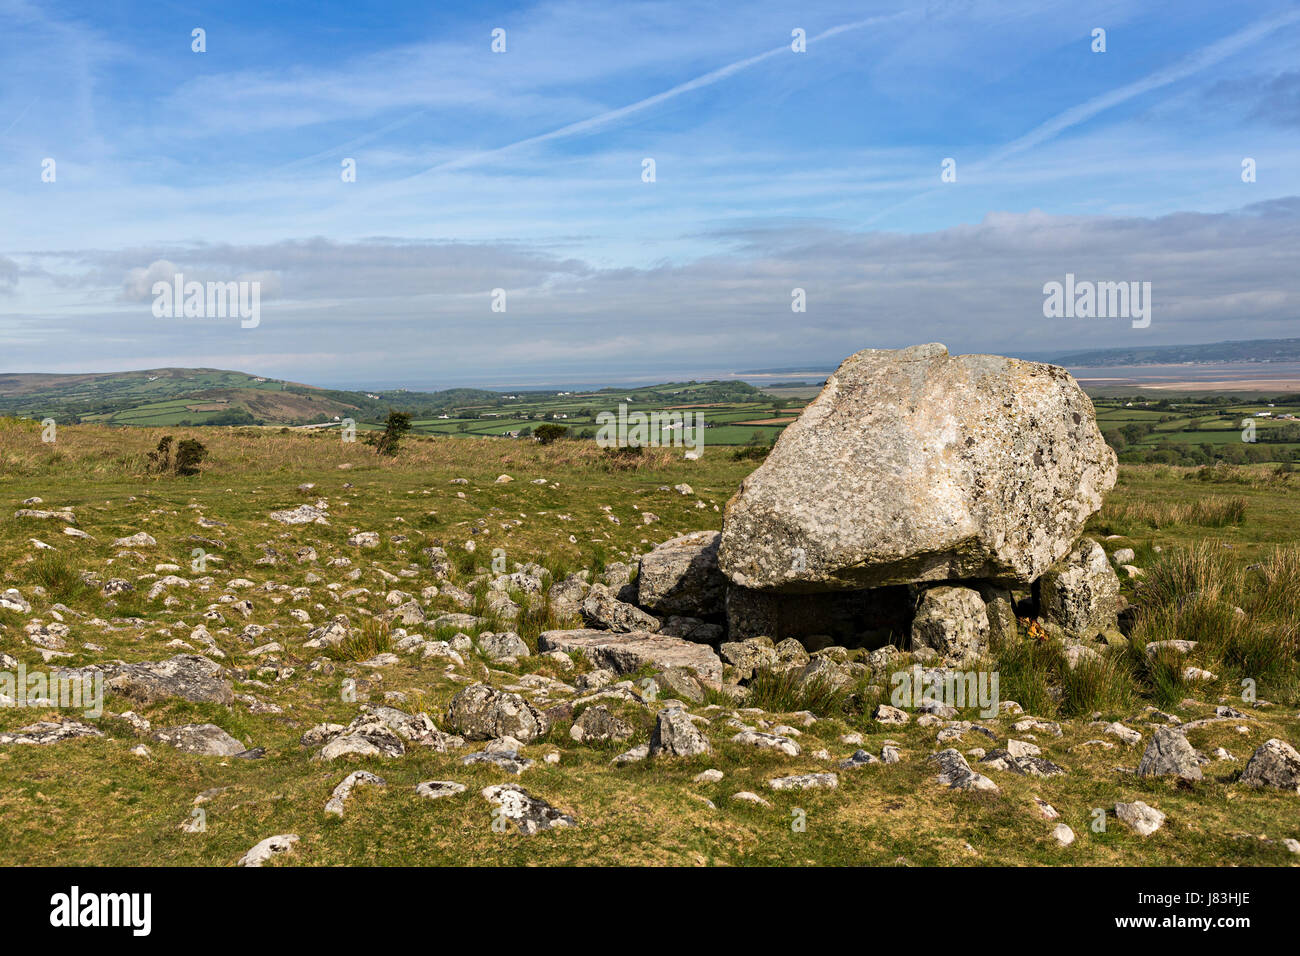 Arthur's Stone, neolithic burial chamber, Cefn Bryn, Gower, Wales, UK - Stock Image